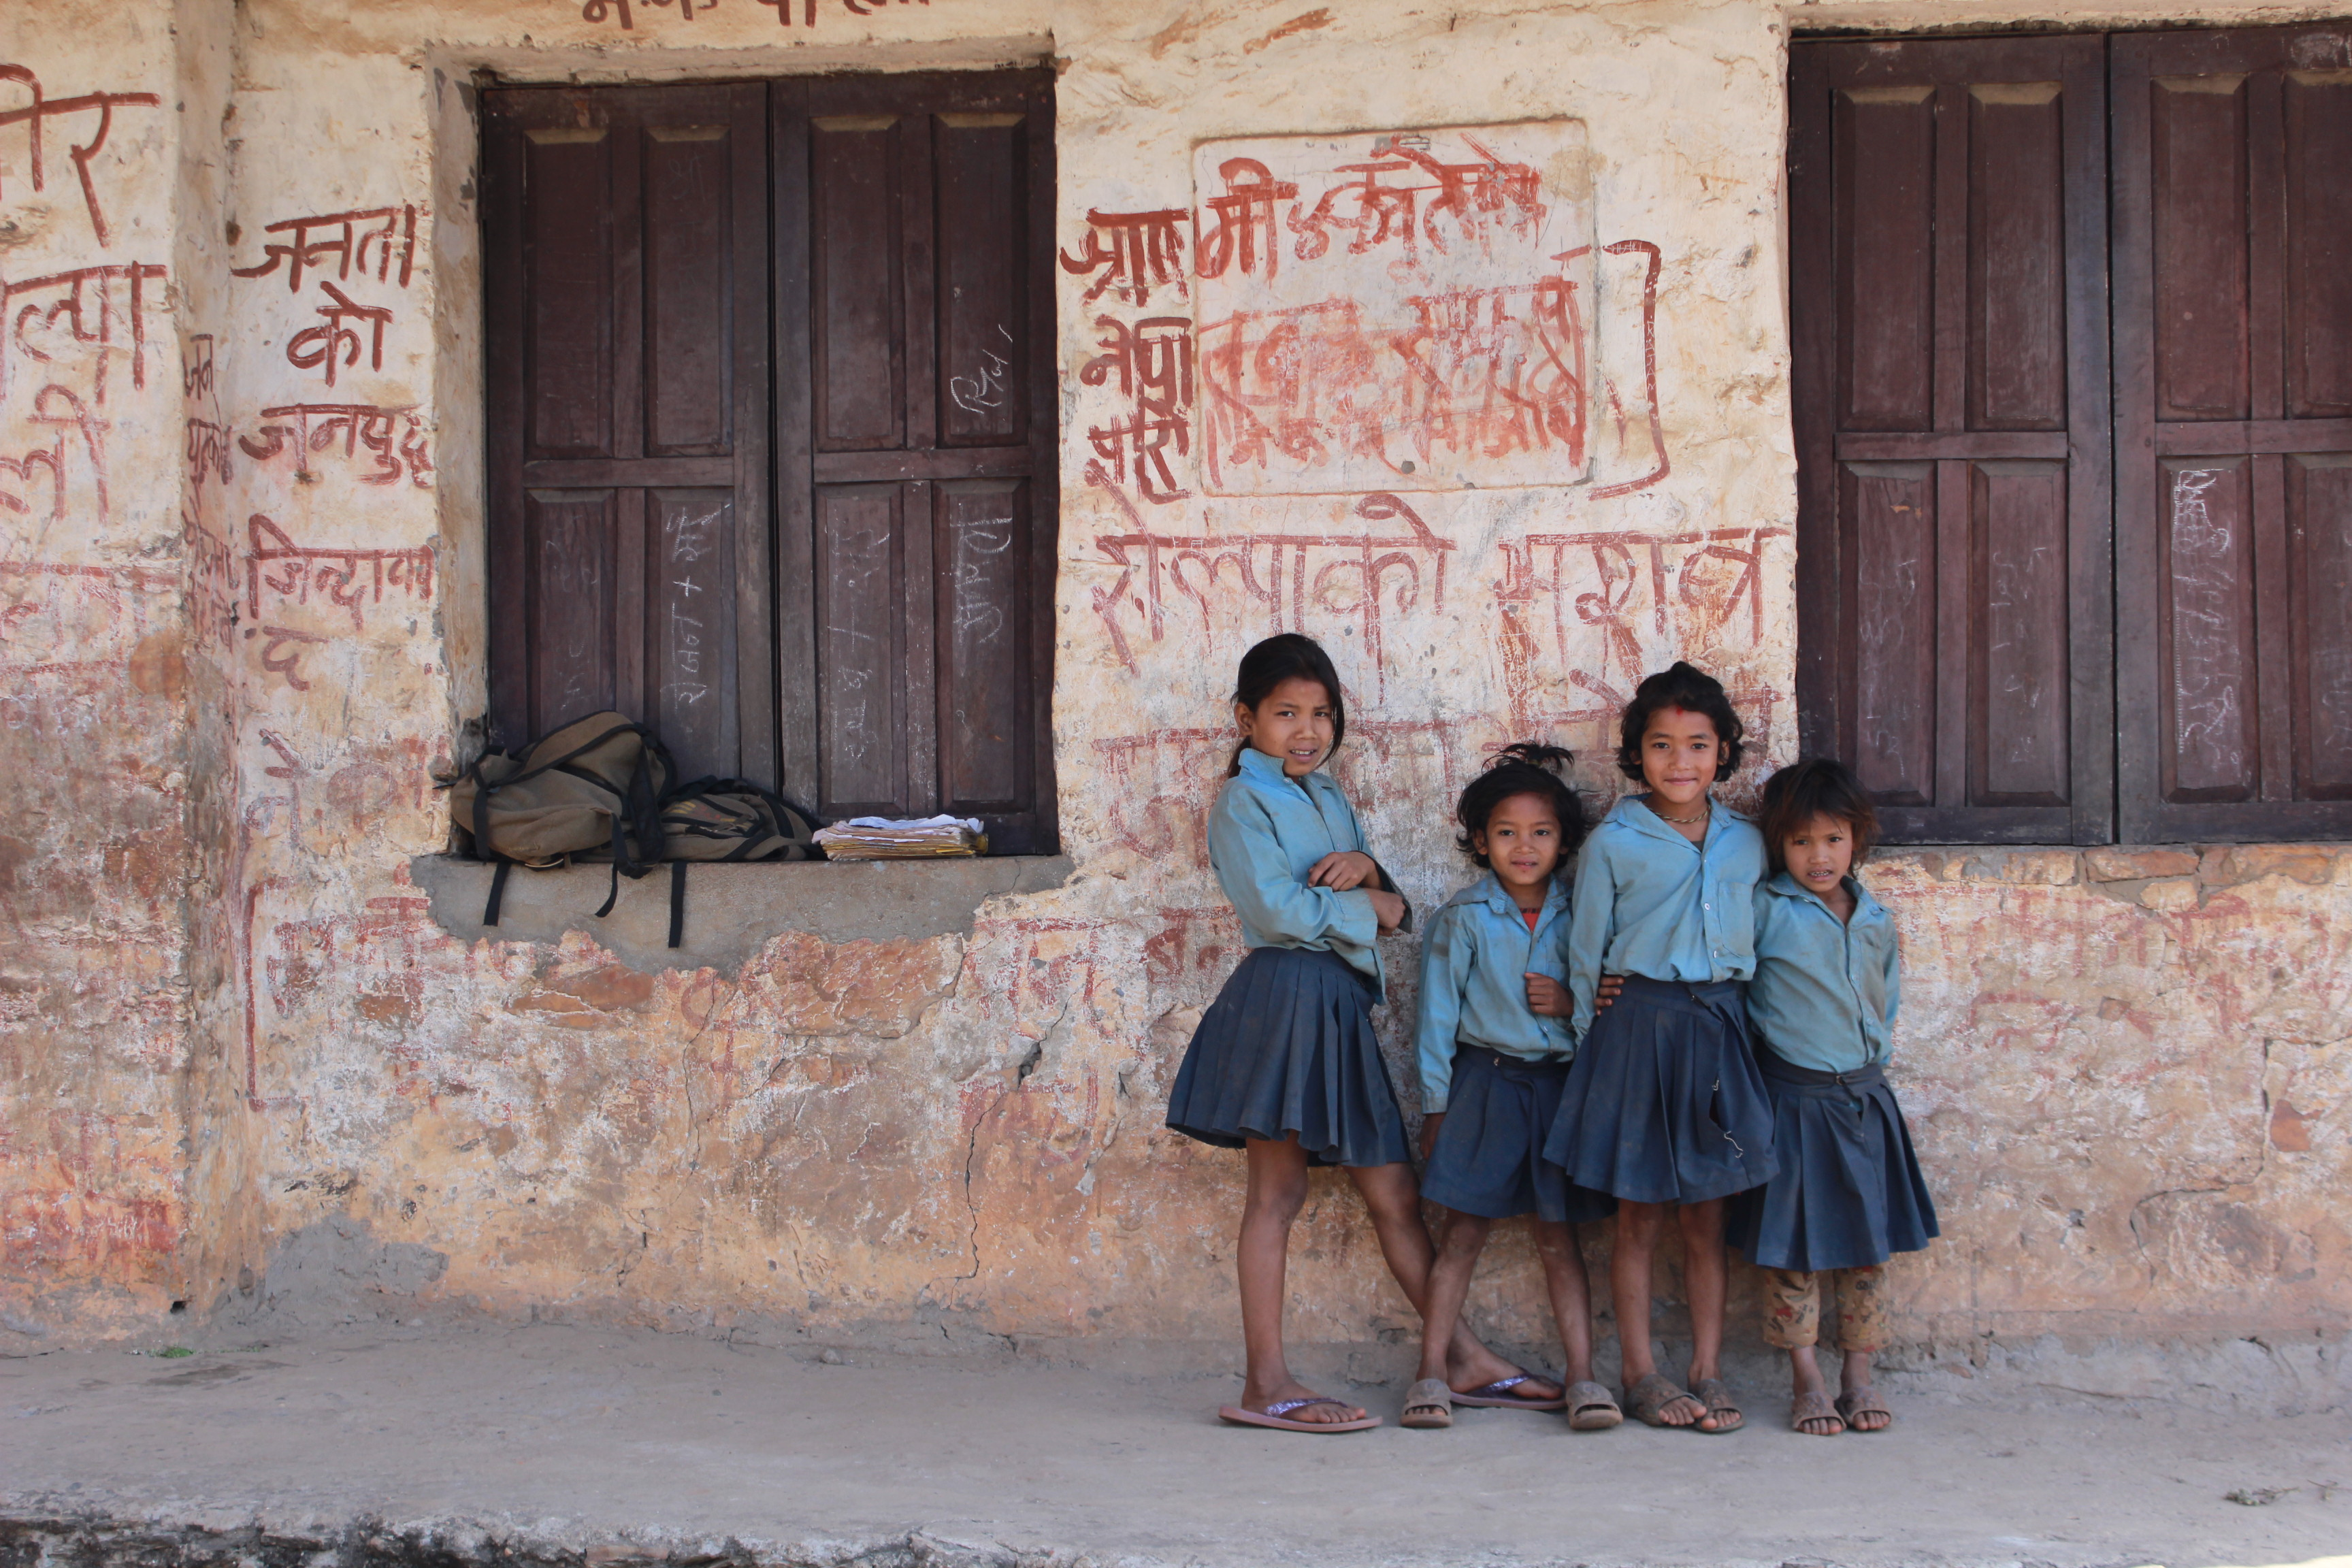 Schoolgirls in Nepal - March 2014 - Credits: courtesy of Childreach International